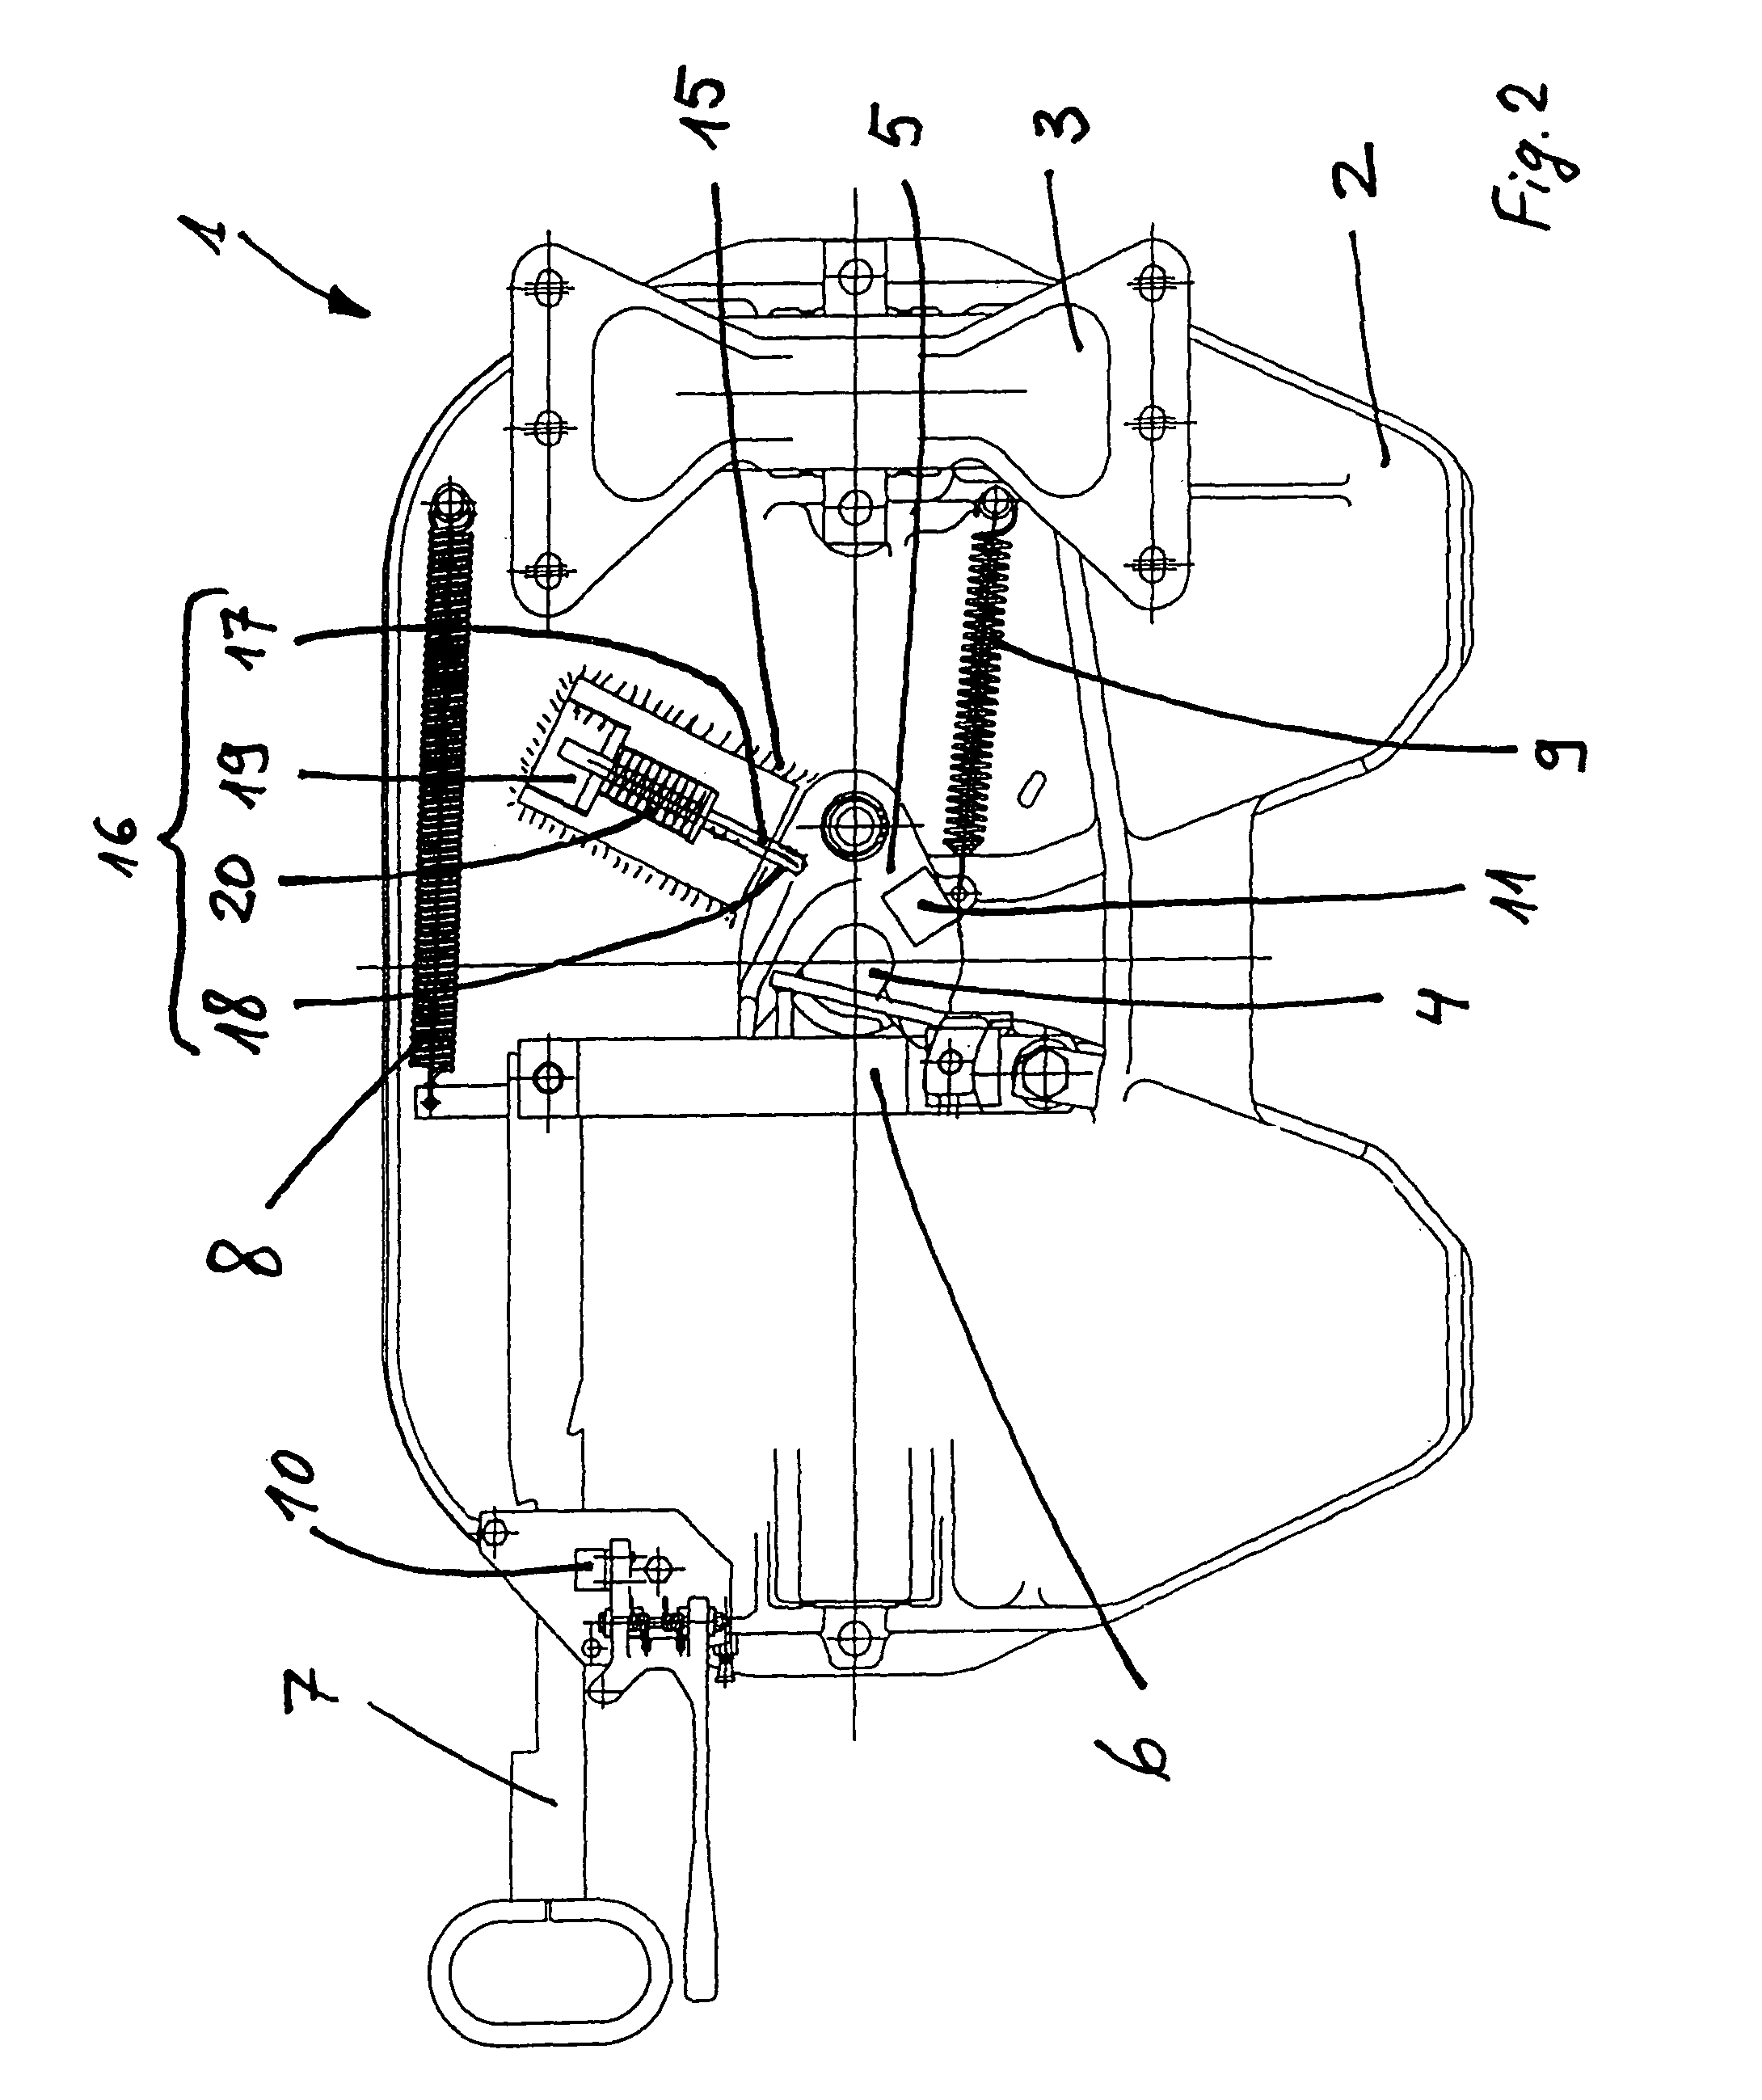 patent us8371600 - fifth wheel with anti-theft protection device